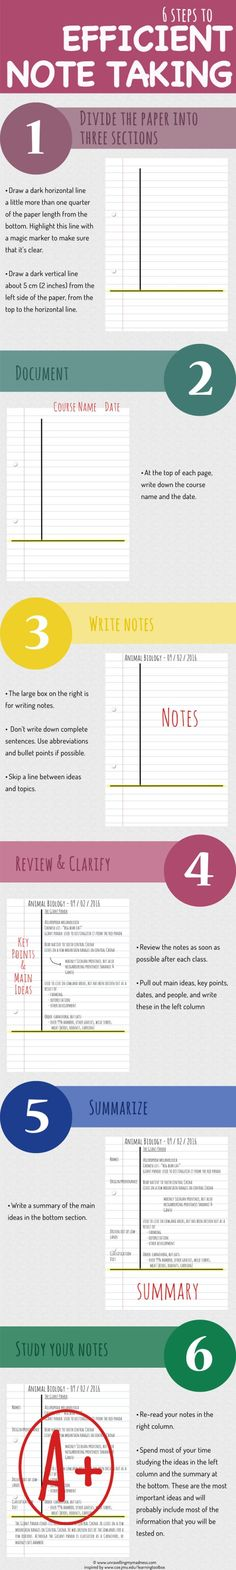 6 steps to efficient note taking. The ultimate guide to getting the most out of…